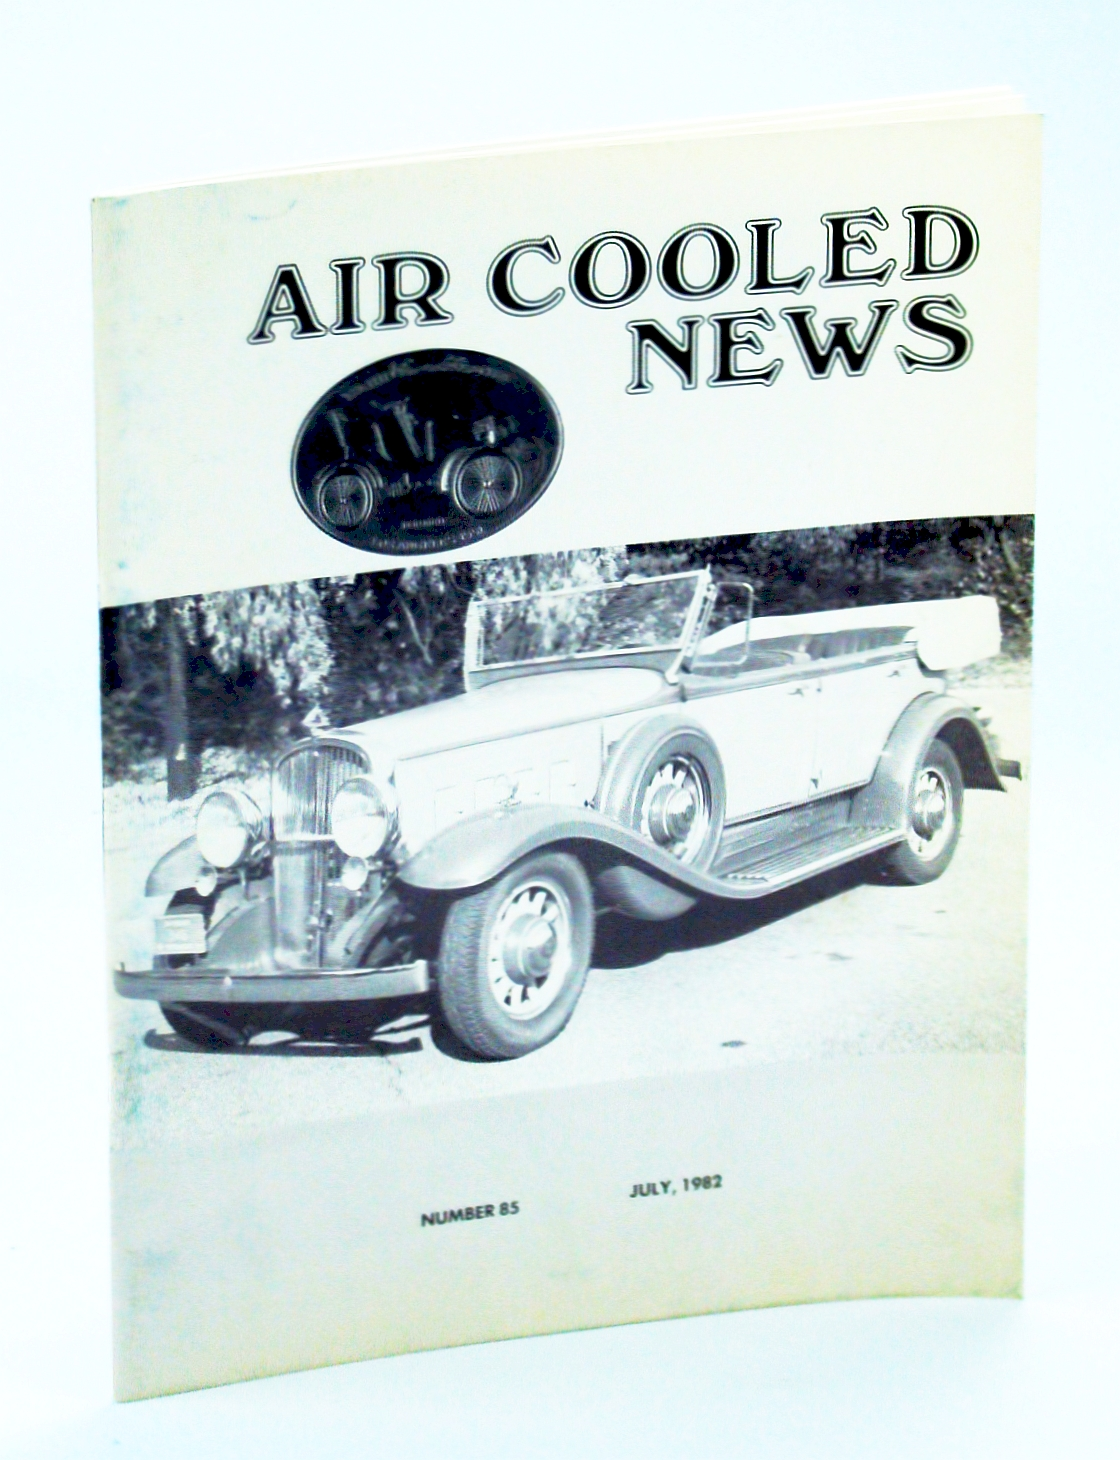 Image for Air Cooled News, Number 85, July 1982, Vol. XXIX, No. 1 - Amelia Earhart, Auto Mechanic